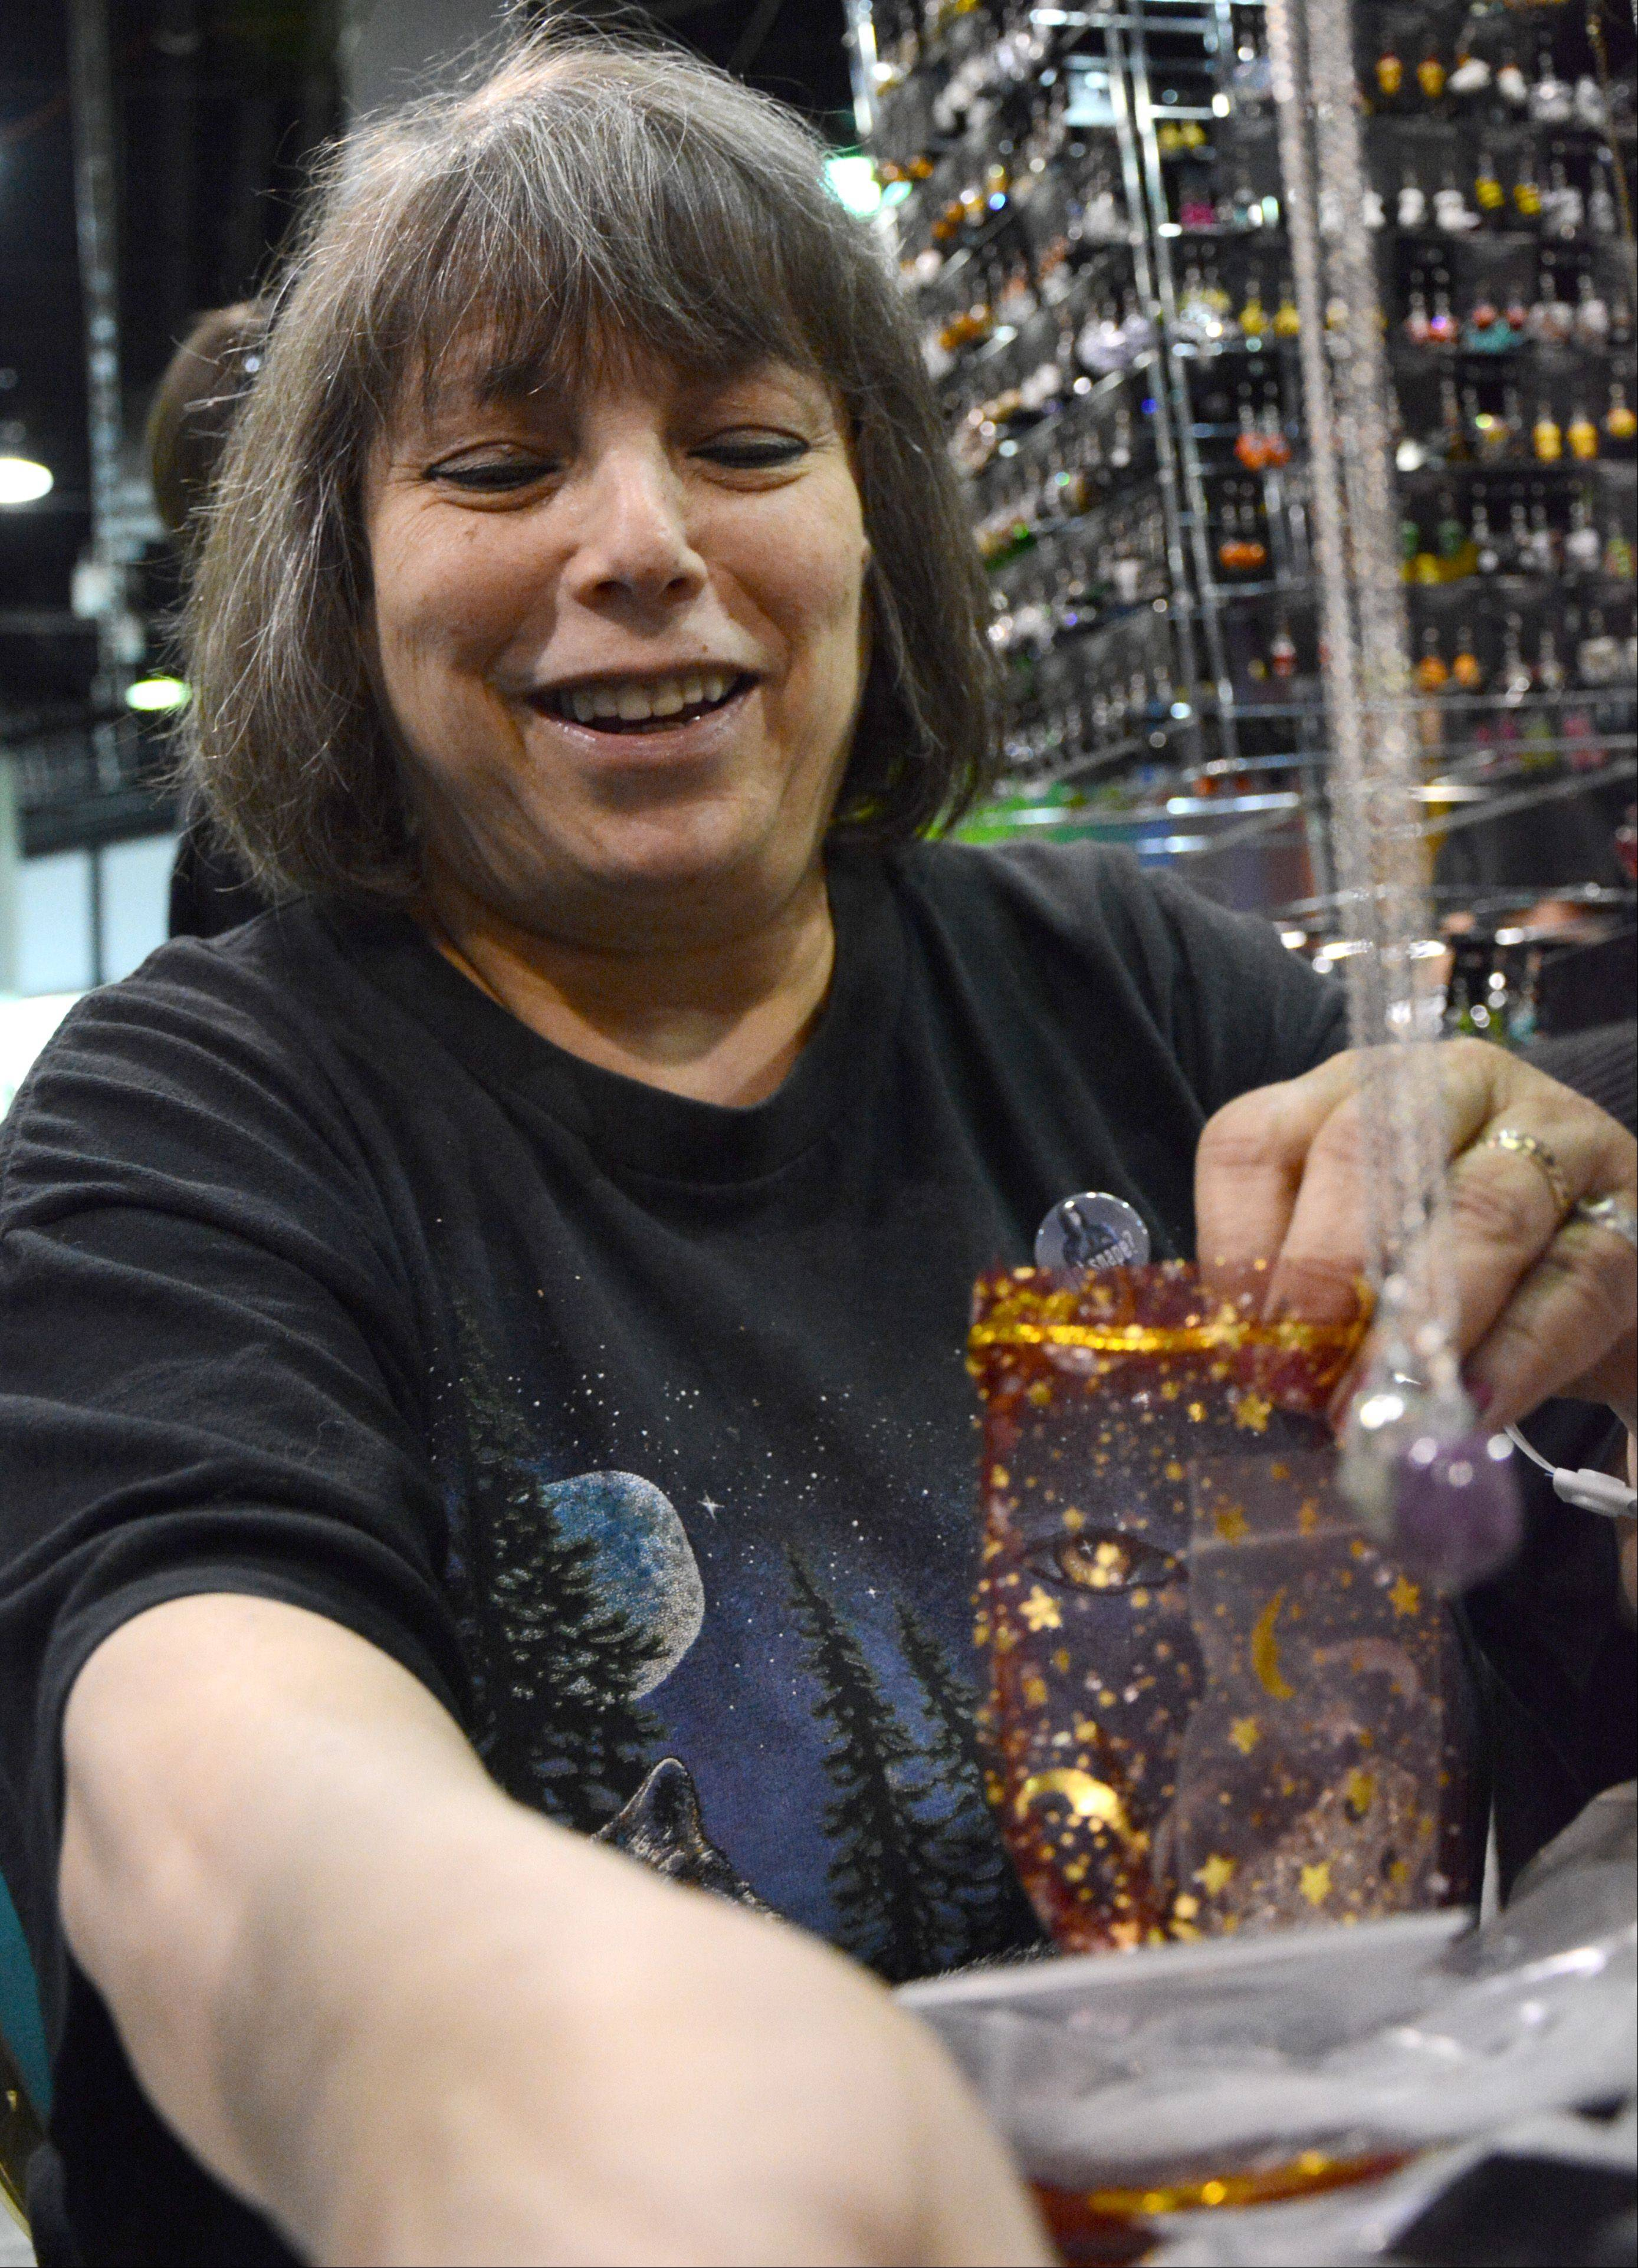 Merrilyn Greenfield, of Northbrook, bags jewelry for a customer during Wizard World Chicago Comic Con in Rosemont Sunday.